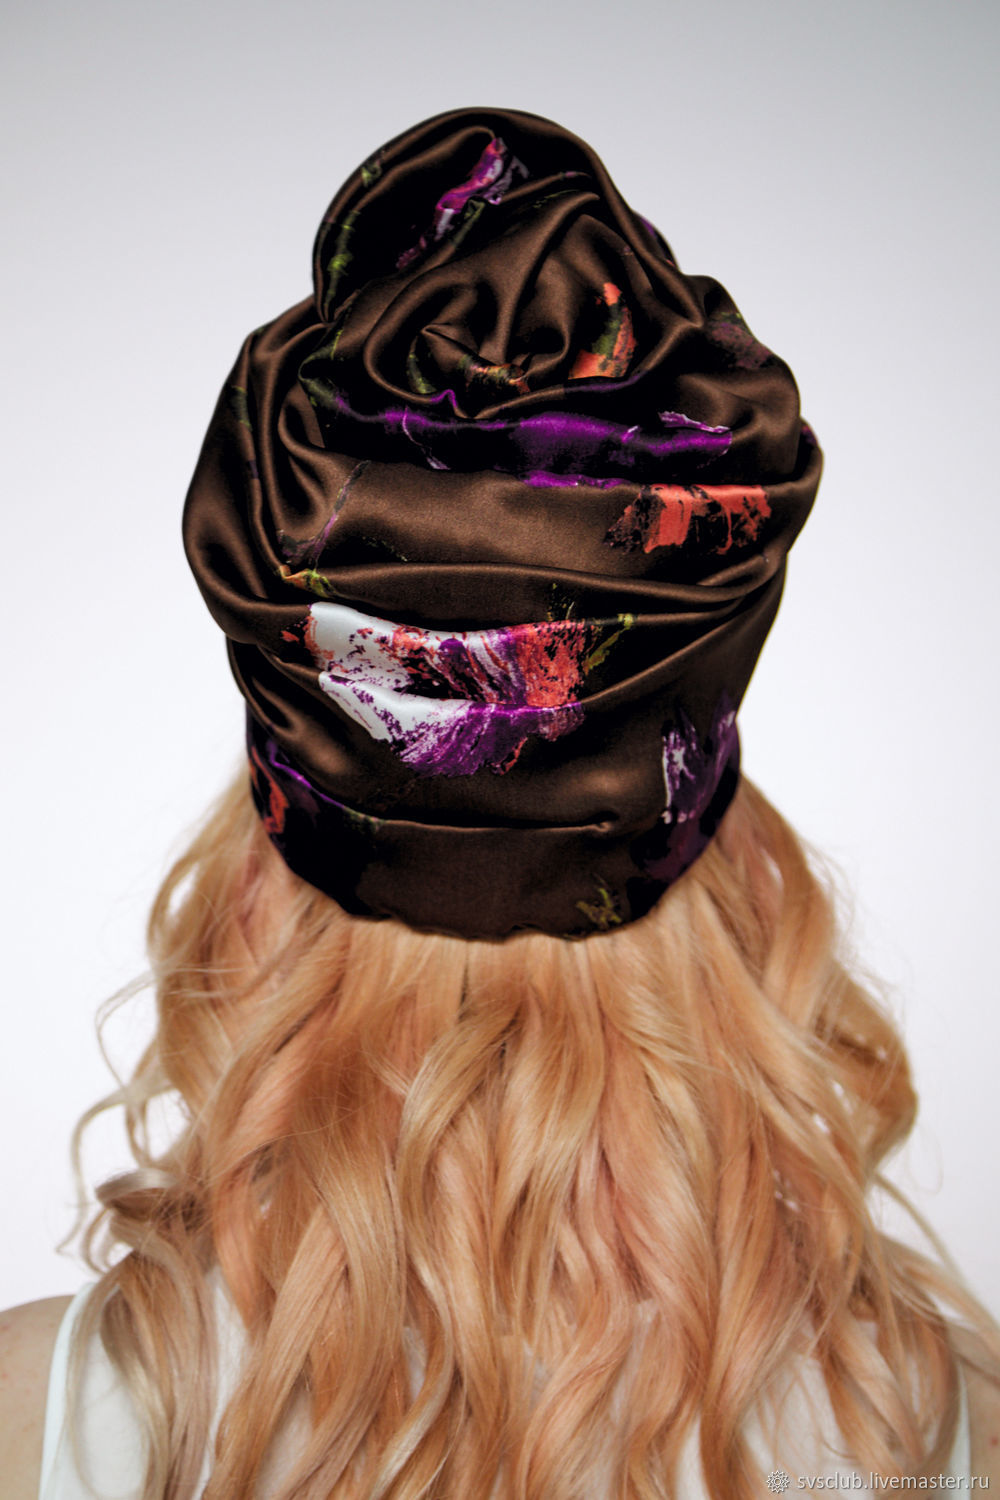 d12874c6af6 Hats handmade. Turban hat hijab millinery Brown with flowers. TURBAN SVS. Online  shopping Hats handmade. Order ...